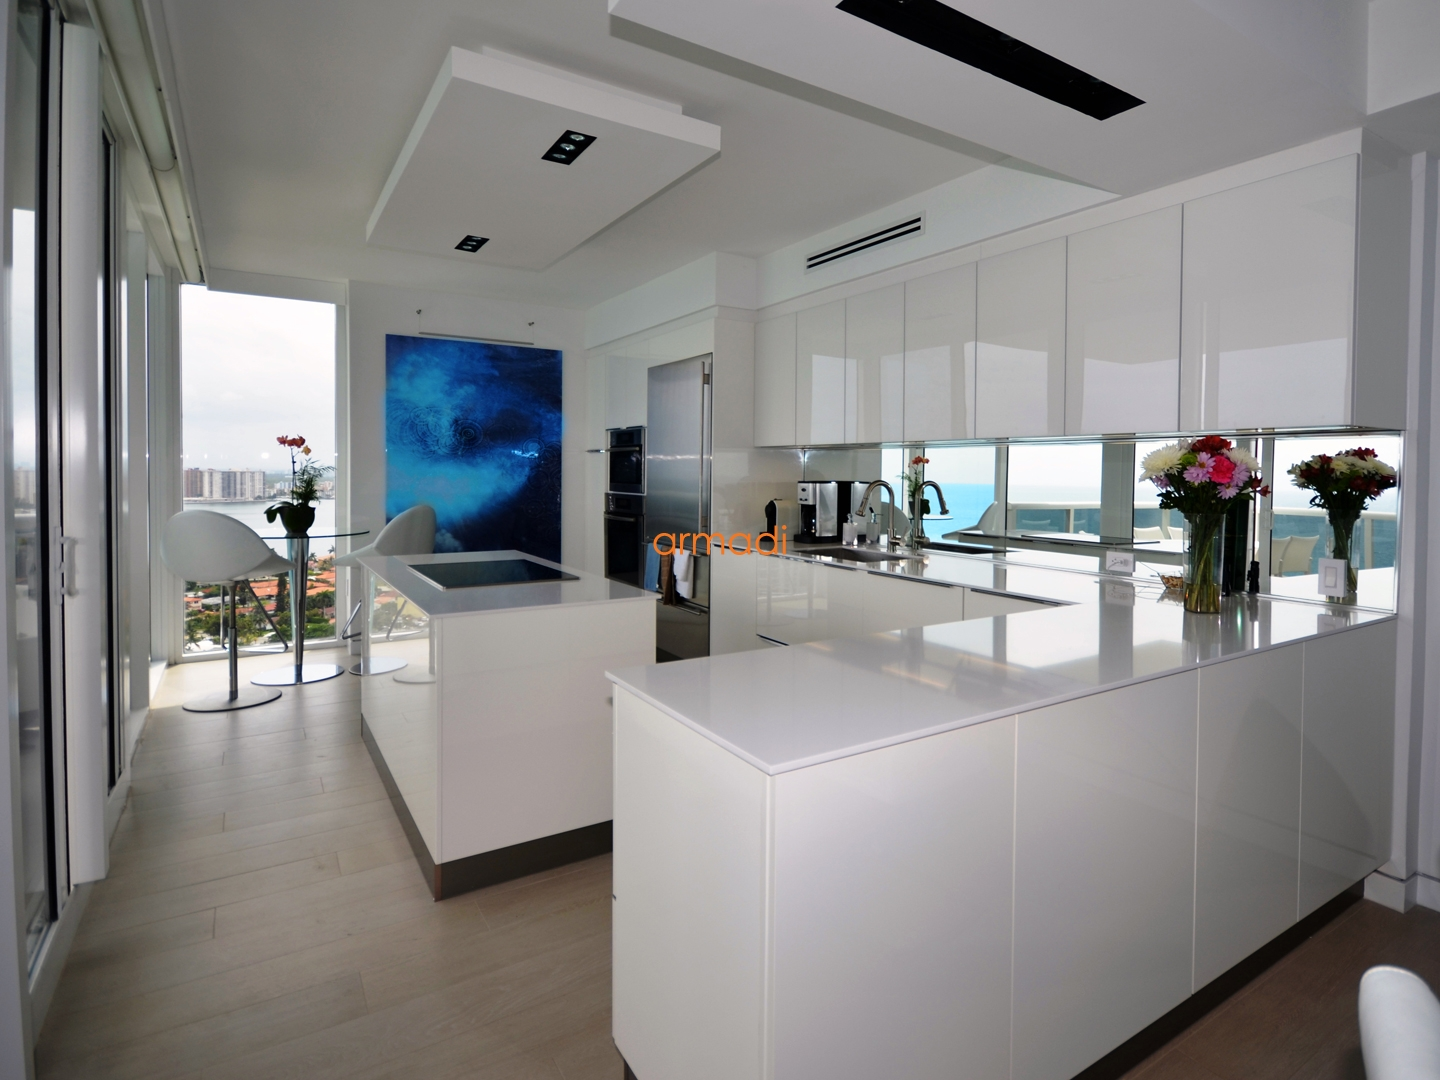 custom kitchen miami archives custom modern furniture in custom kitchen miami archives custom modern furniture in